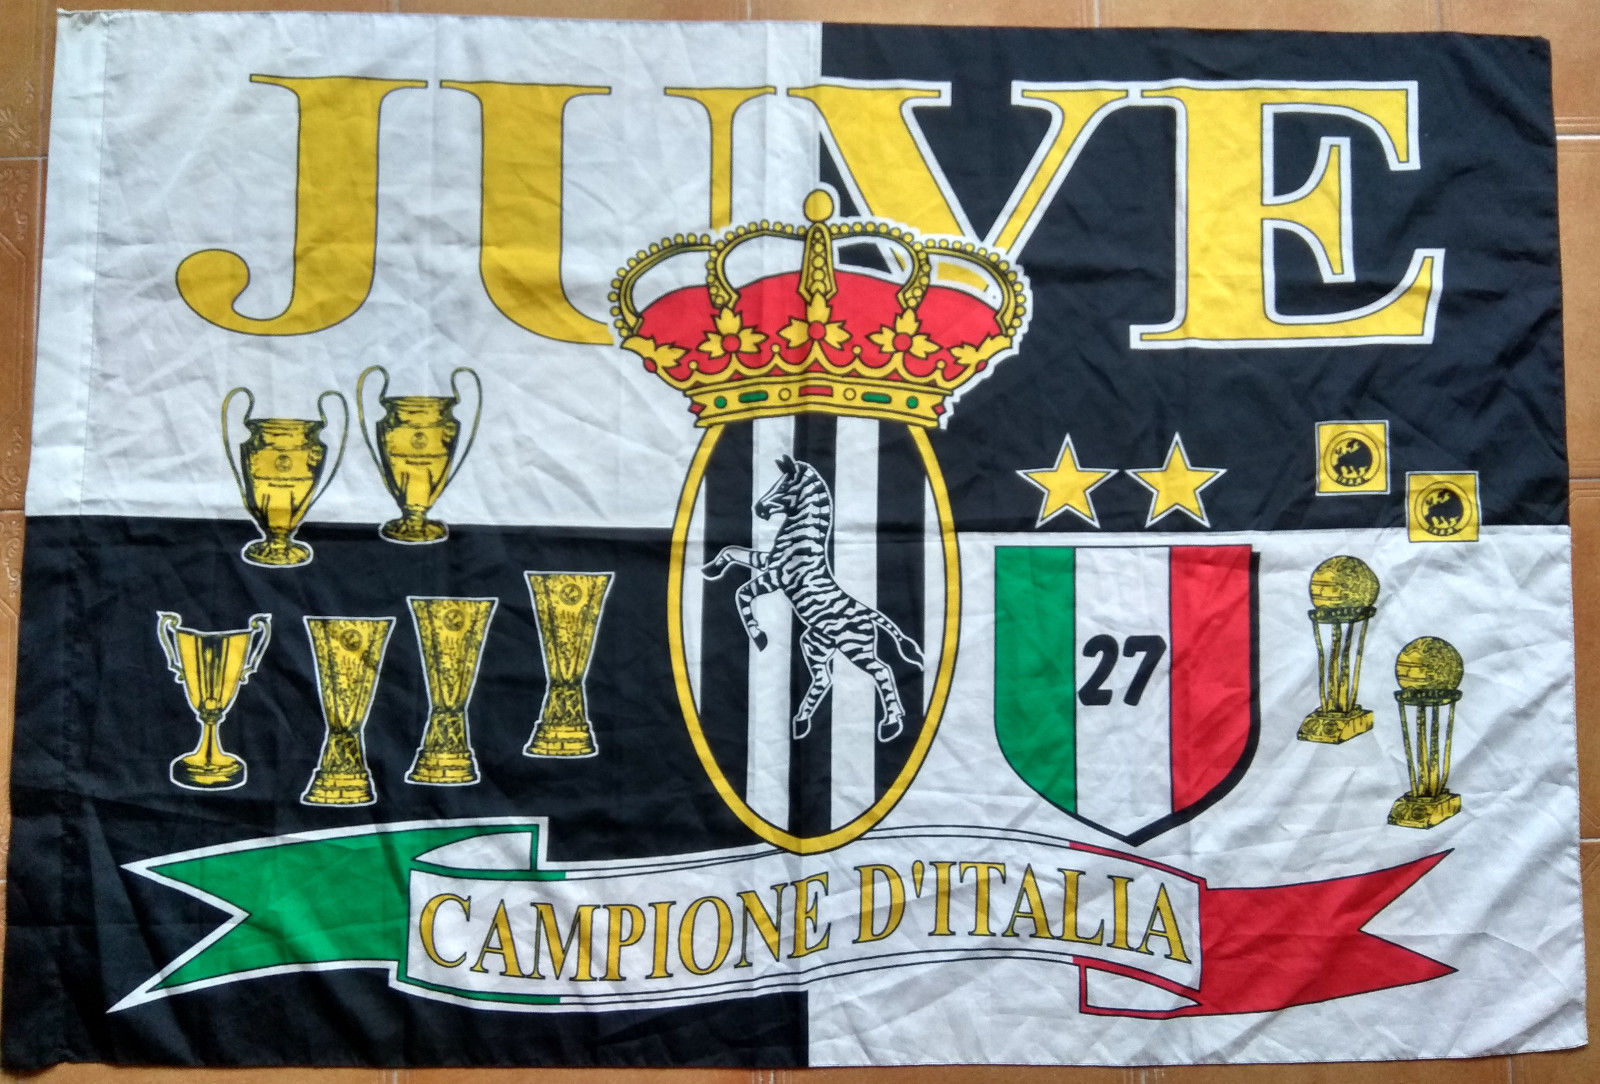 Quilt Oberhausen Juventus Flag Vintage Juve 27 Campione D And 50 Similar Items